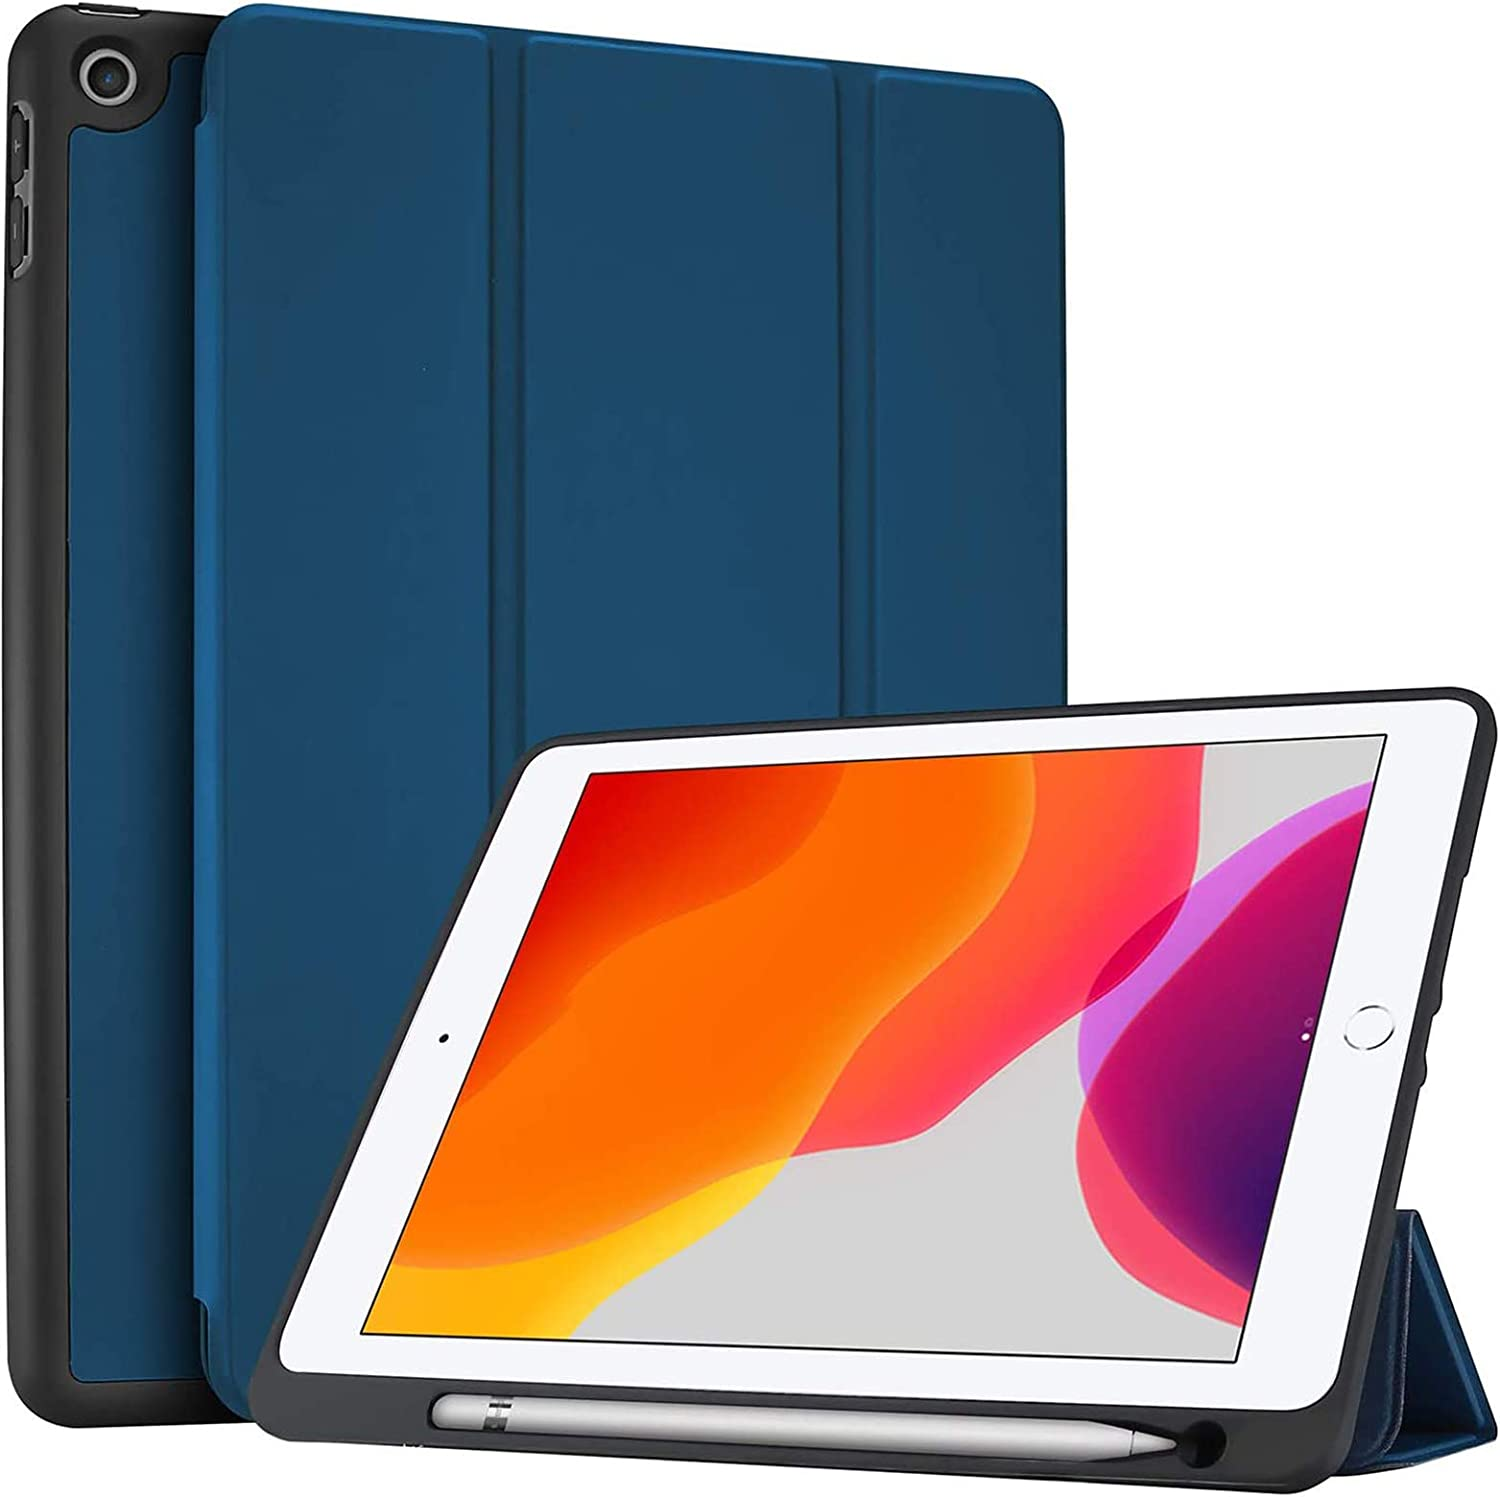 ProCase New iPad 10.2 Case (2020 8th Generation / 2019 7th Generation) with Pencil Holder and Flexible Soft TPU Back Cover, Slim Steady Stand Protective Case for 10.2